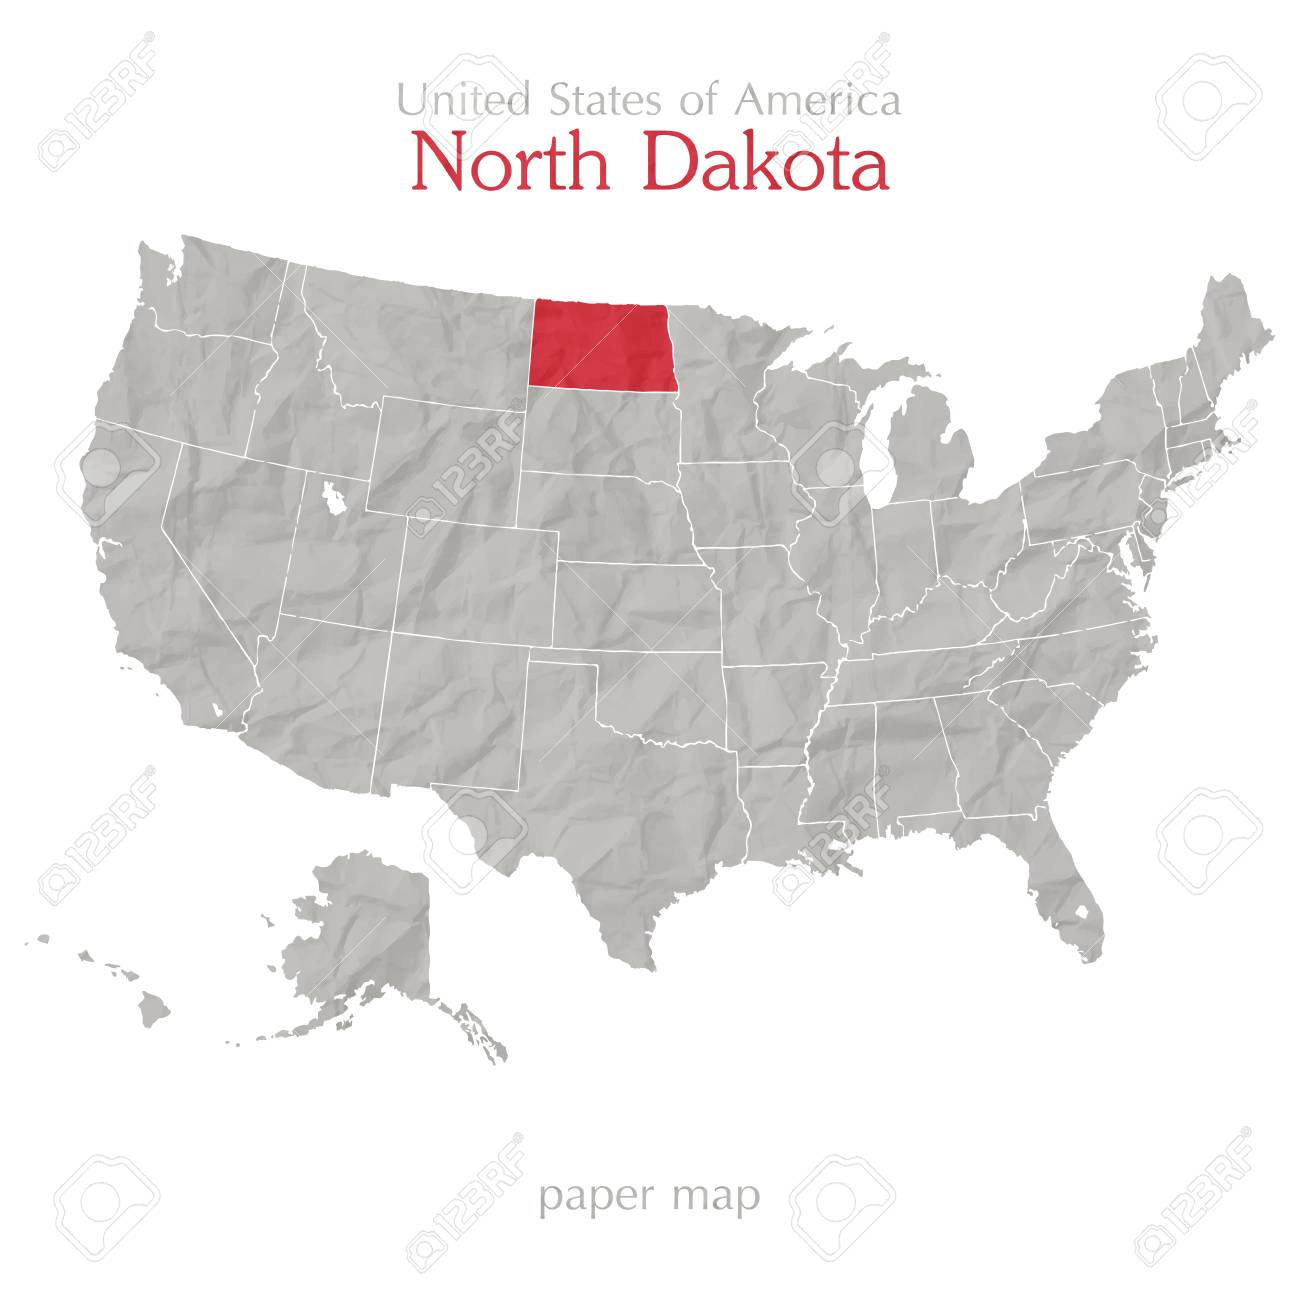 United States of America map and North Dakota territory isolated.. on chicago map of the united states, ohio map of the united states, california map of the united states, upper midwest map of the united states, texas map of the united states, nebraska map of the united states, pennsylvania map of the united states, canada map of the united states, alaska map of the united states, utah map of the united states, mountain map of the united states, wisconsin map of the united states, state map of the united states, mississippi river map of the united states, virginia map of the united states, alabama map of the united states,